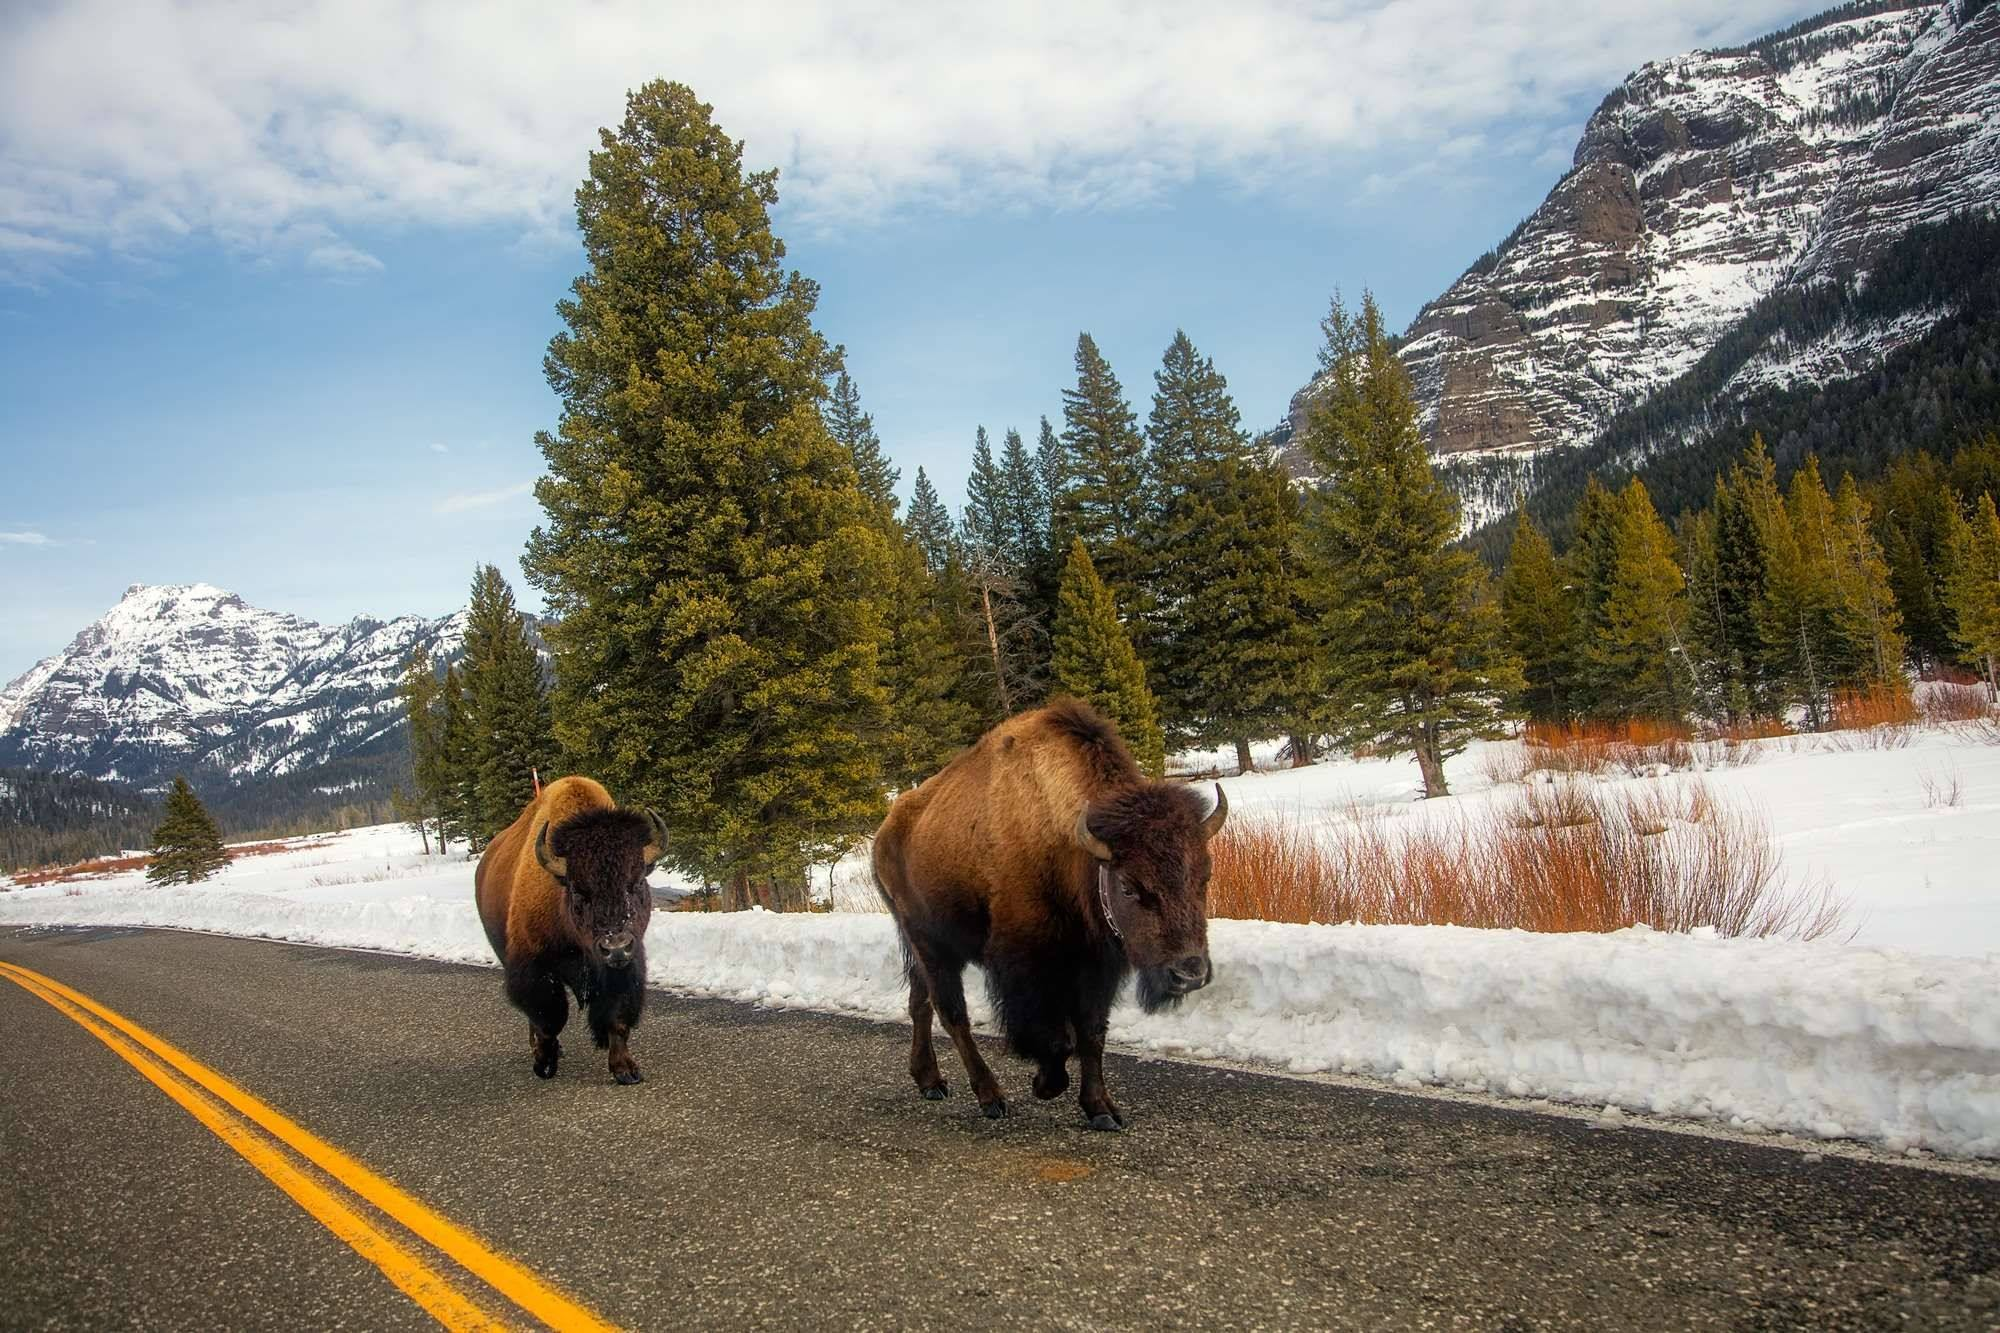 yellowstone national park bison road snow mountains animals